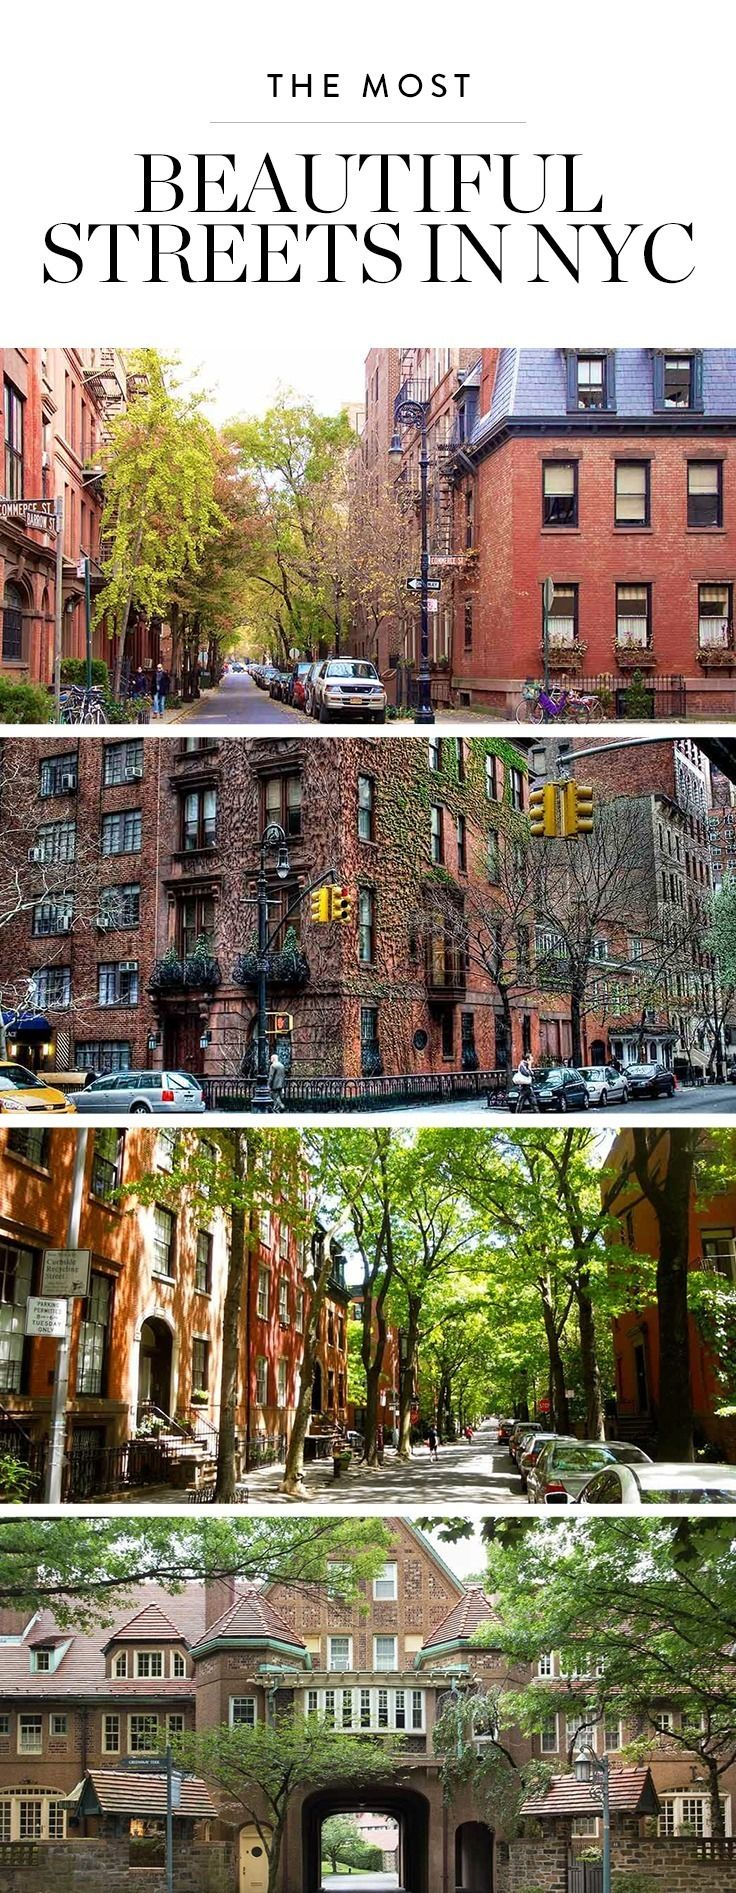 Destinations The 9 Most Beautiful Streets in